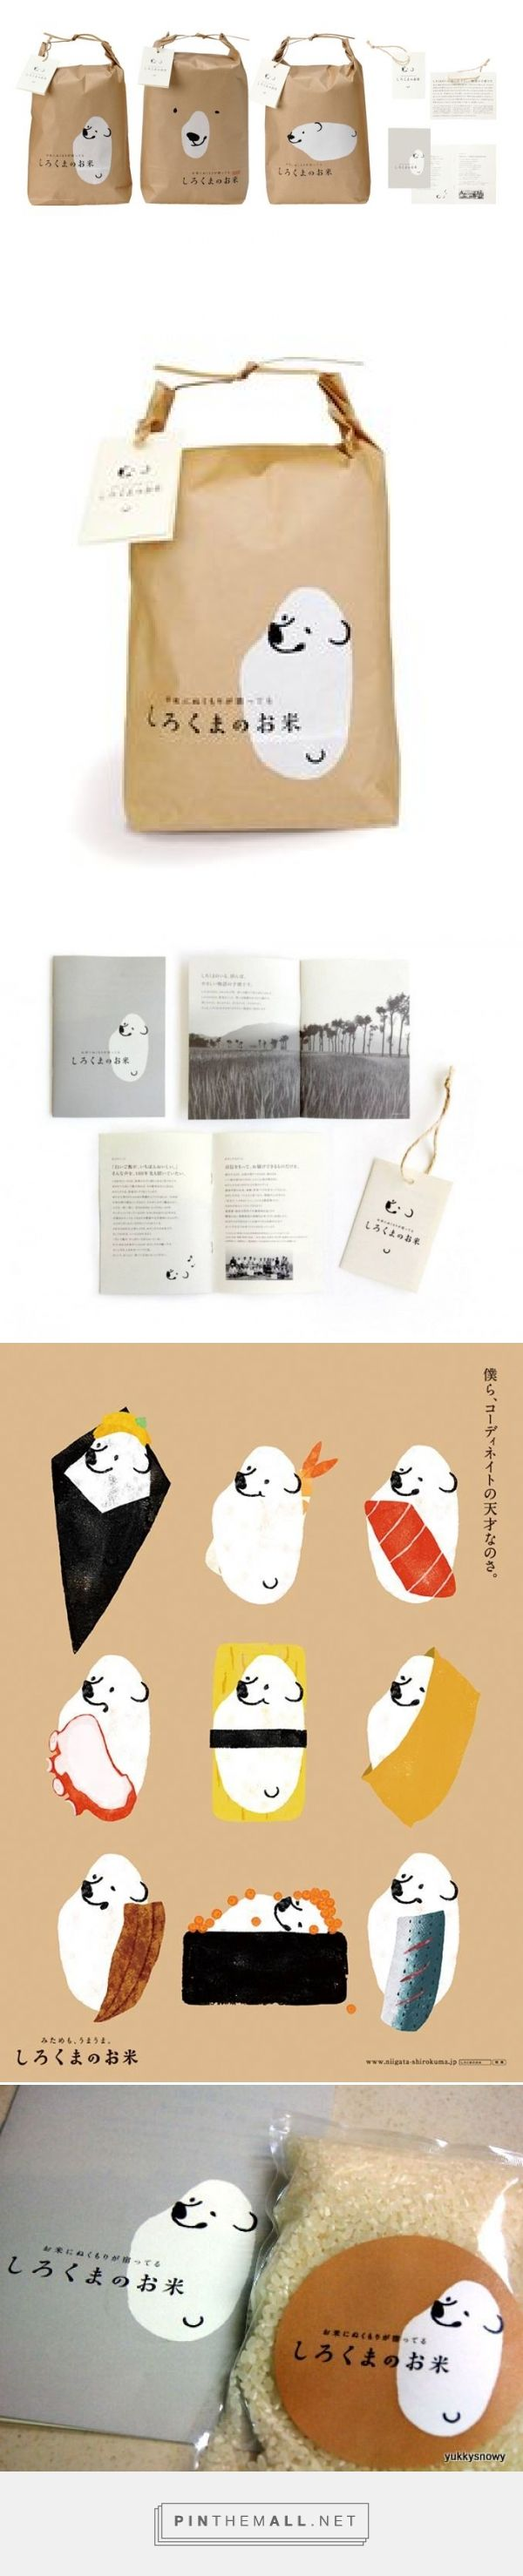 More behind the very popular Shirokuma Rice packaging by Ishikawa Ryuta curated by Packaging Diva. Had to go to several different sources to pull this all together. 2015 top team packaging pin.